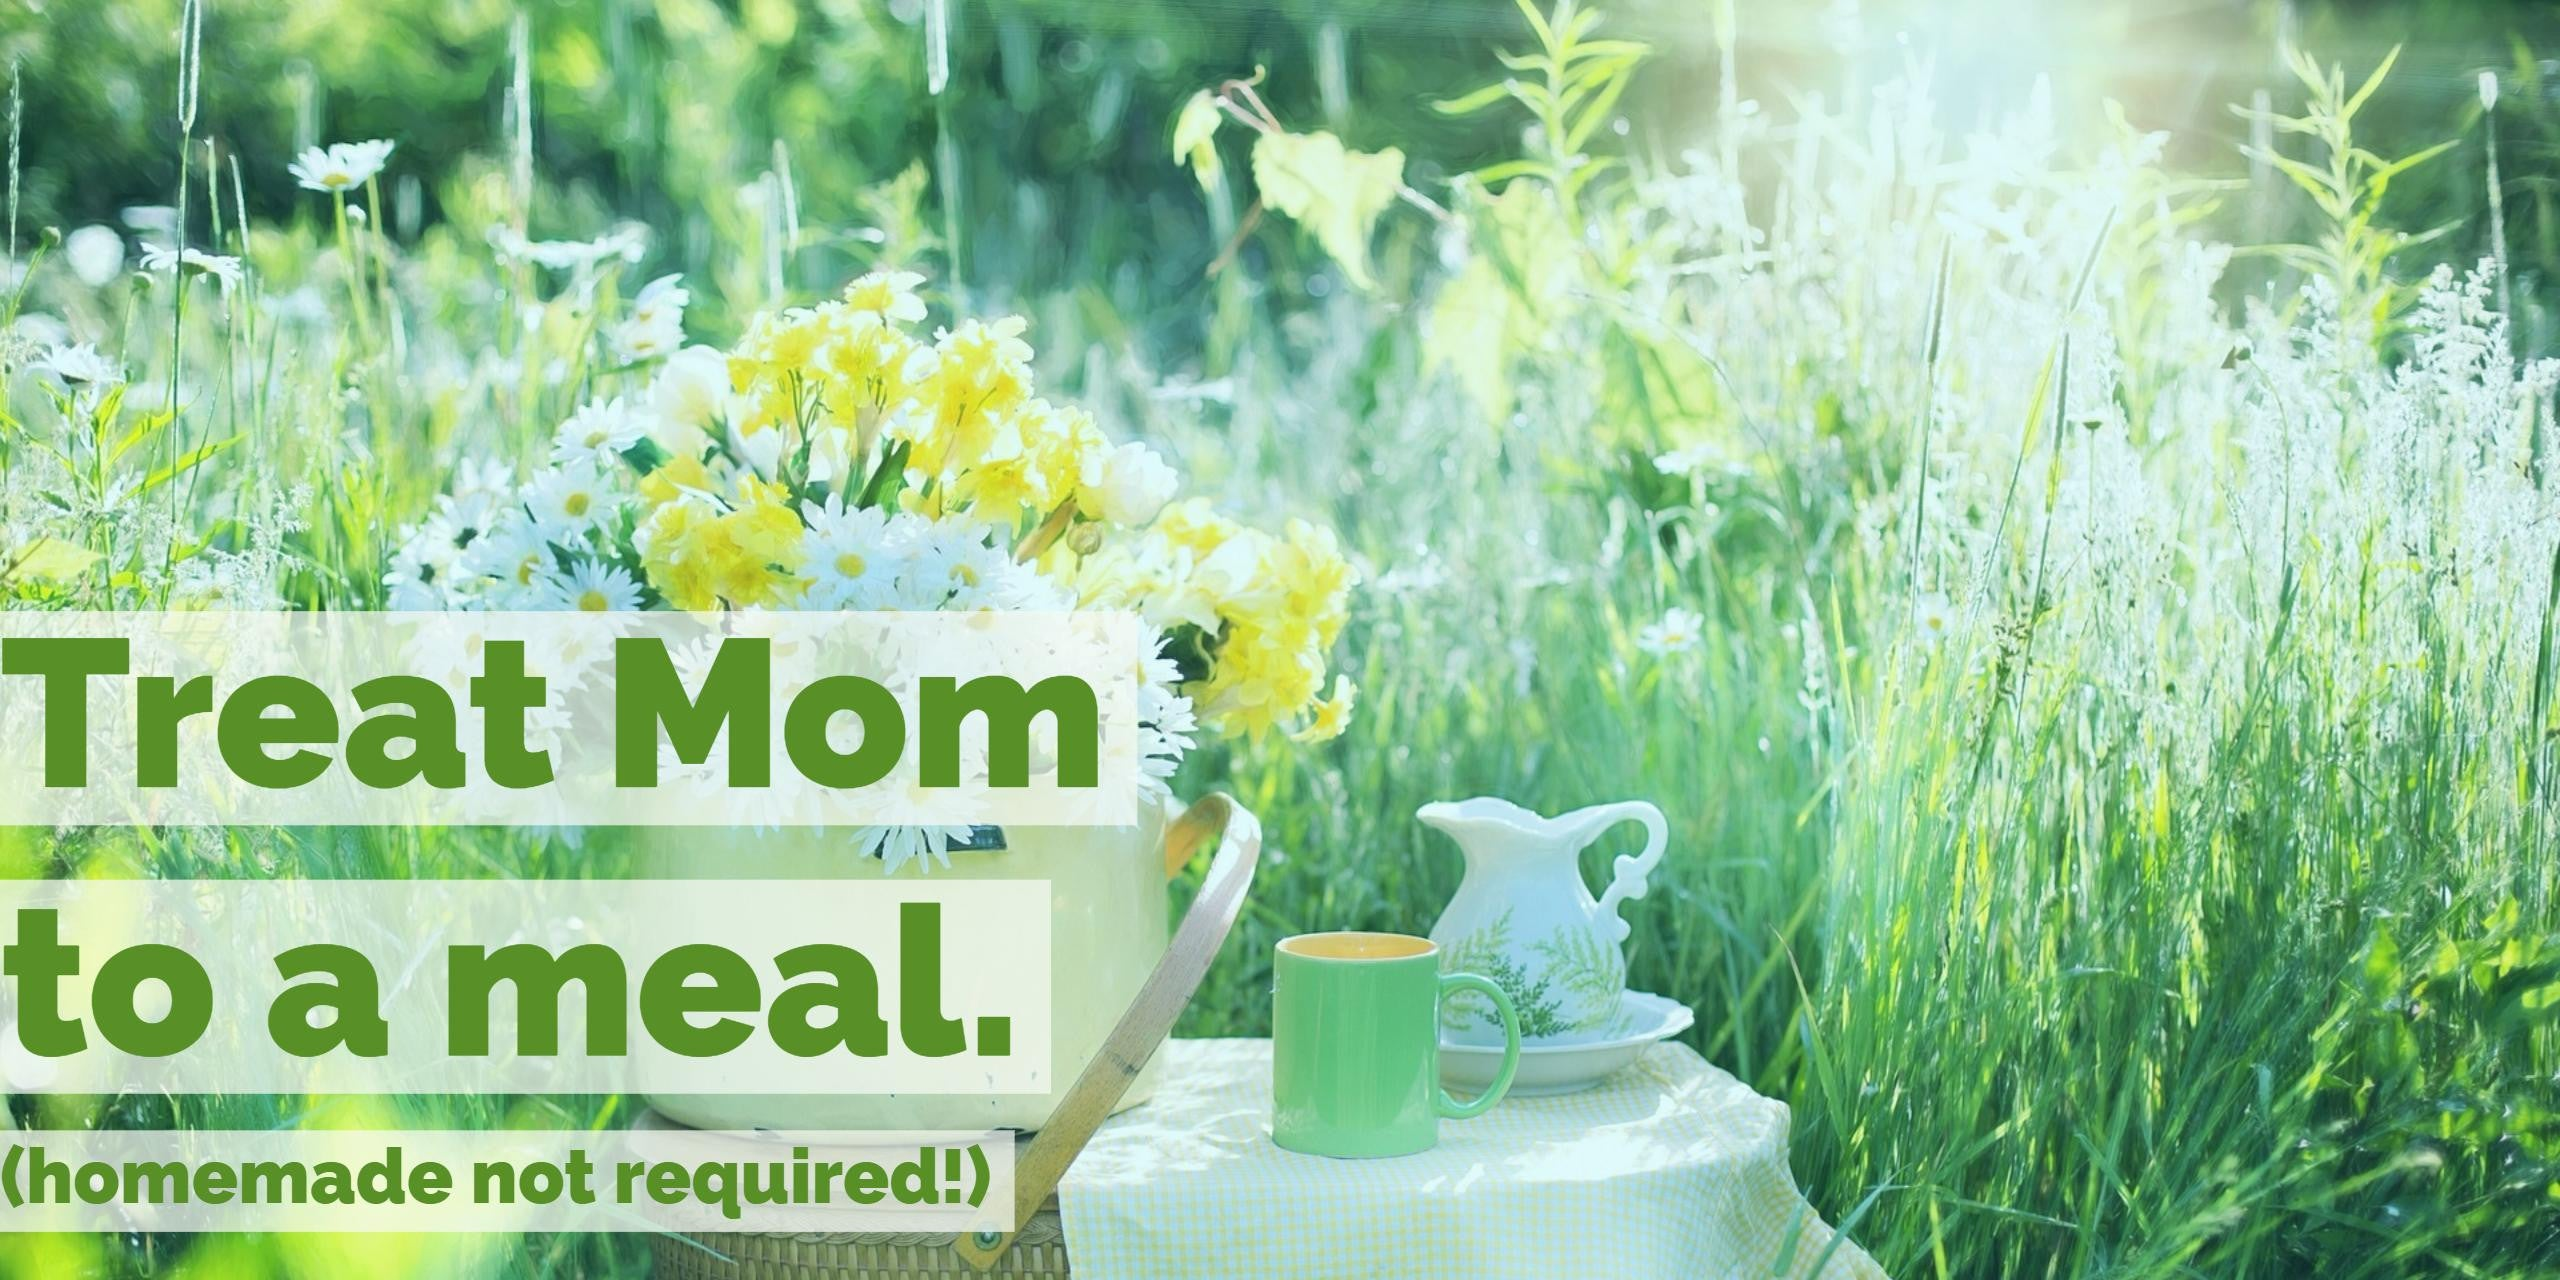 Treat Mom to a meal